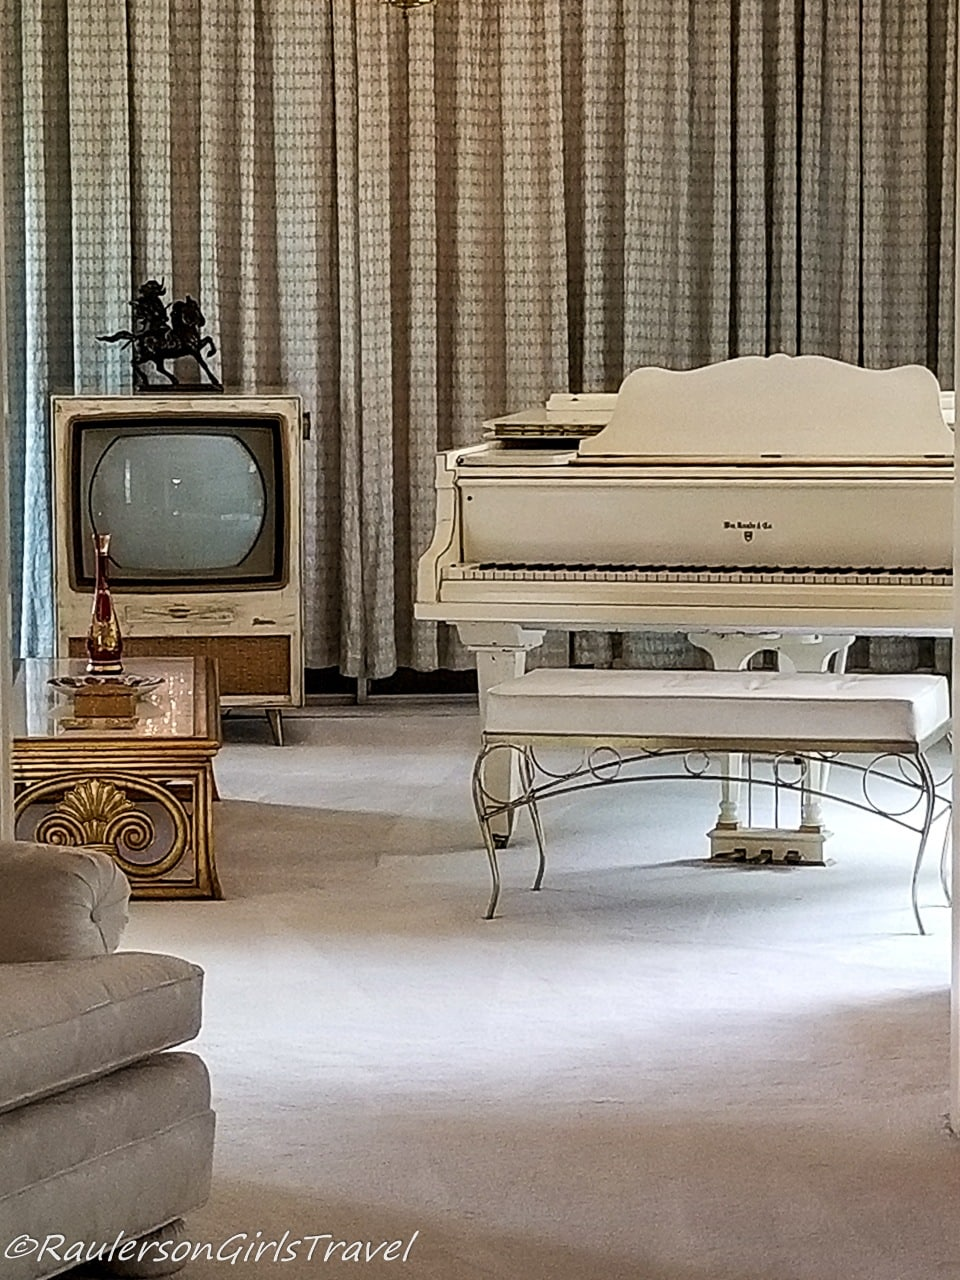 Piano and TV in Living Room at Graceland